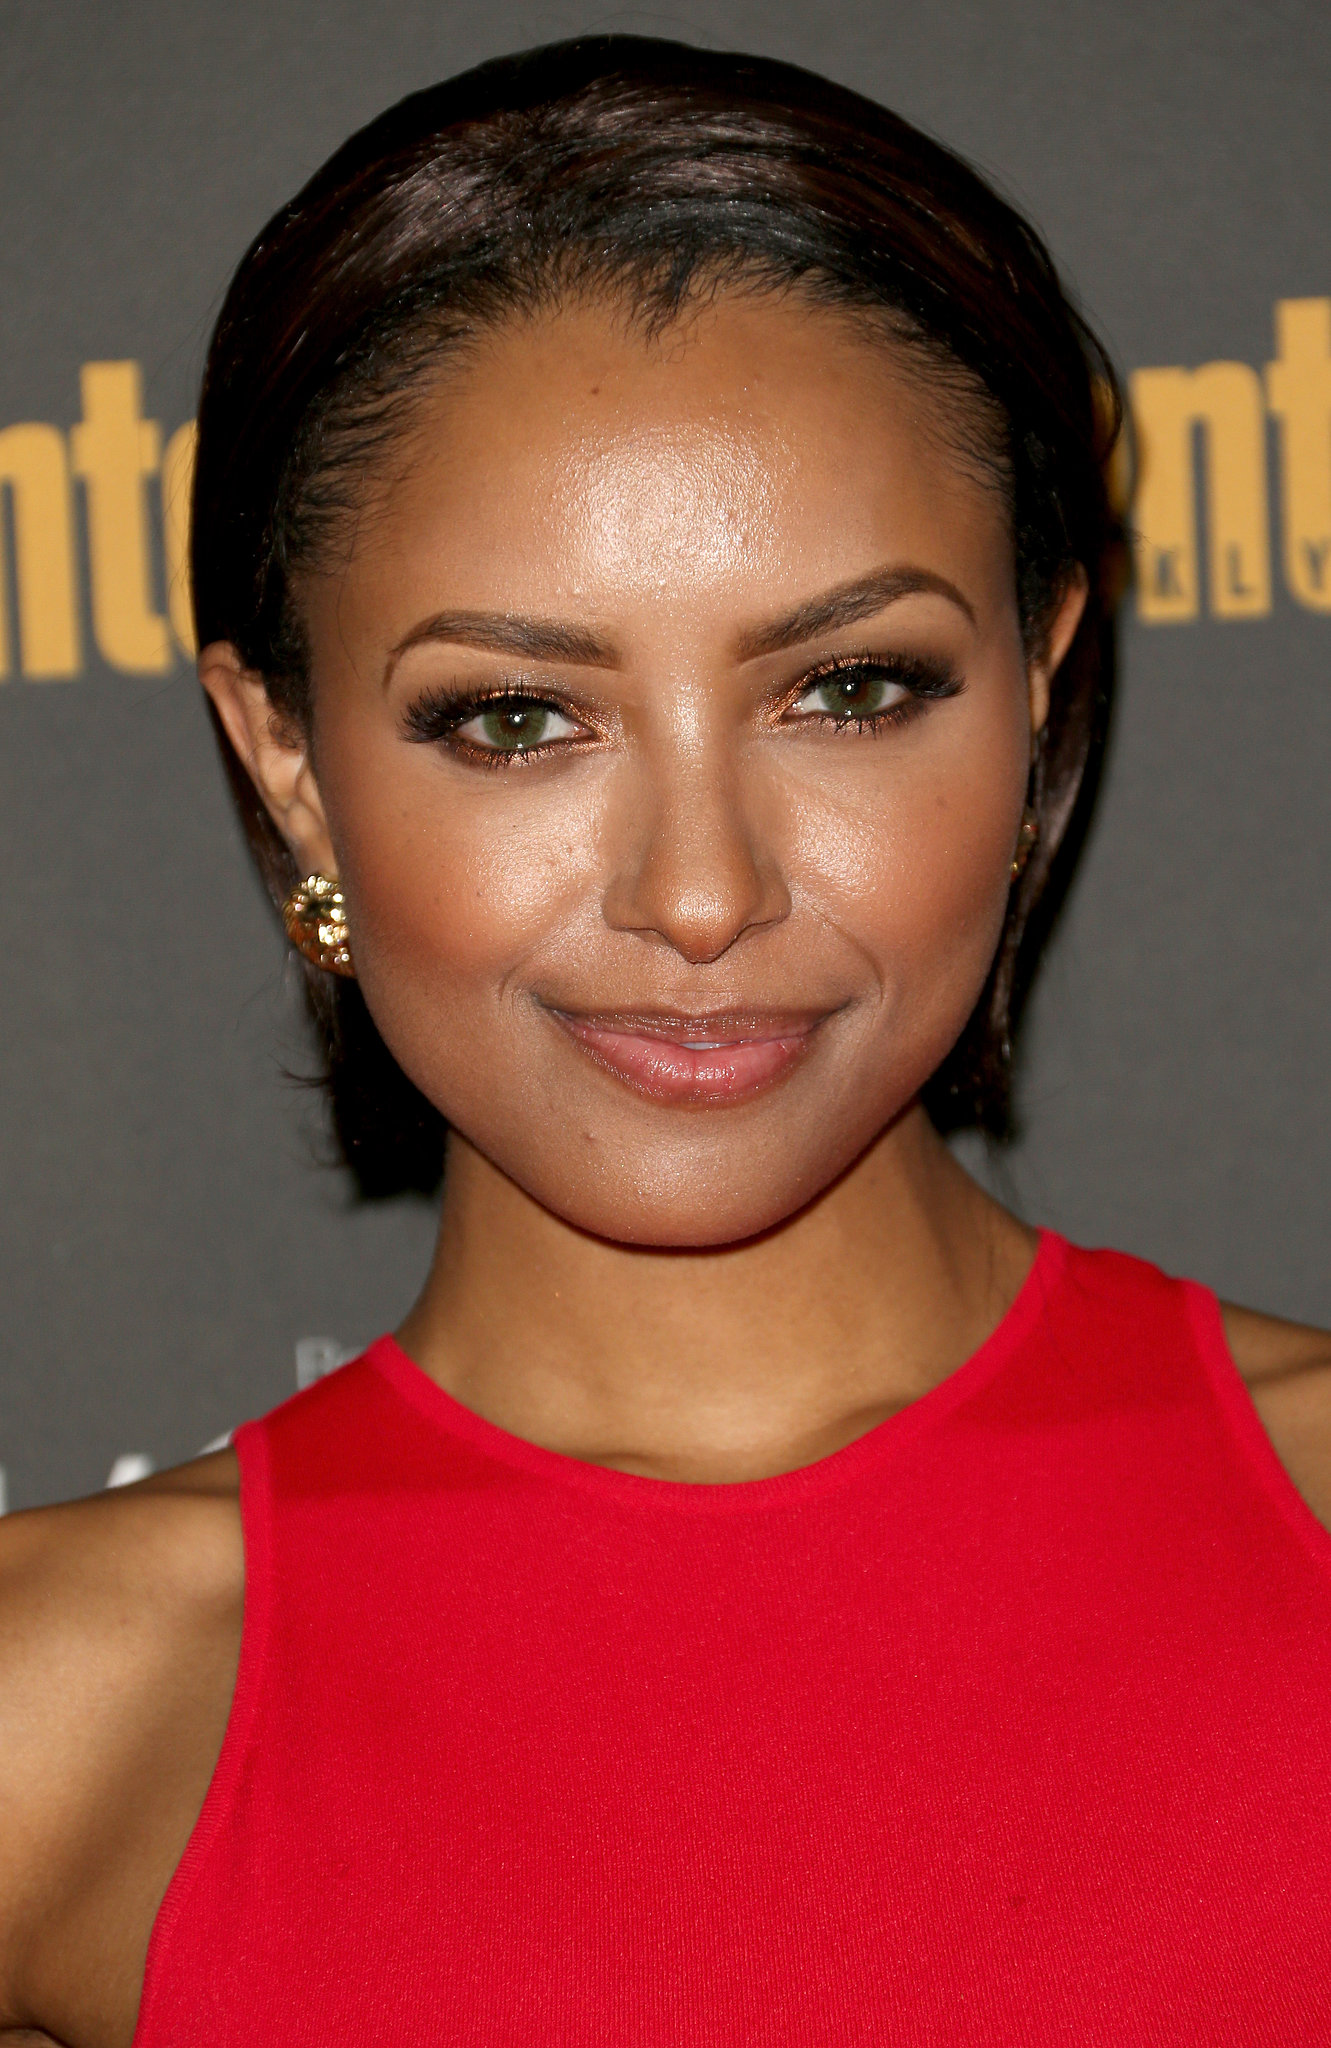 Kat Graham let her natural beauty shine